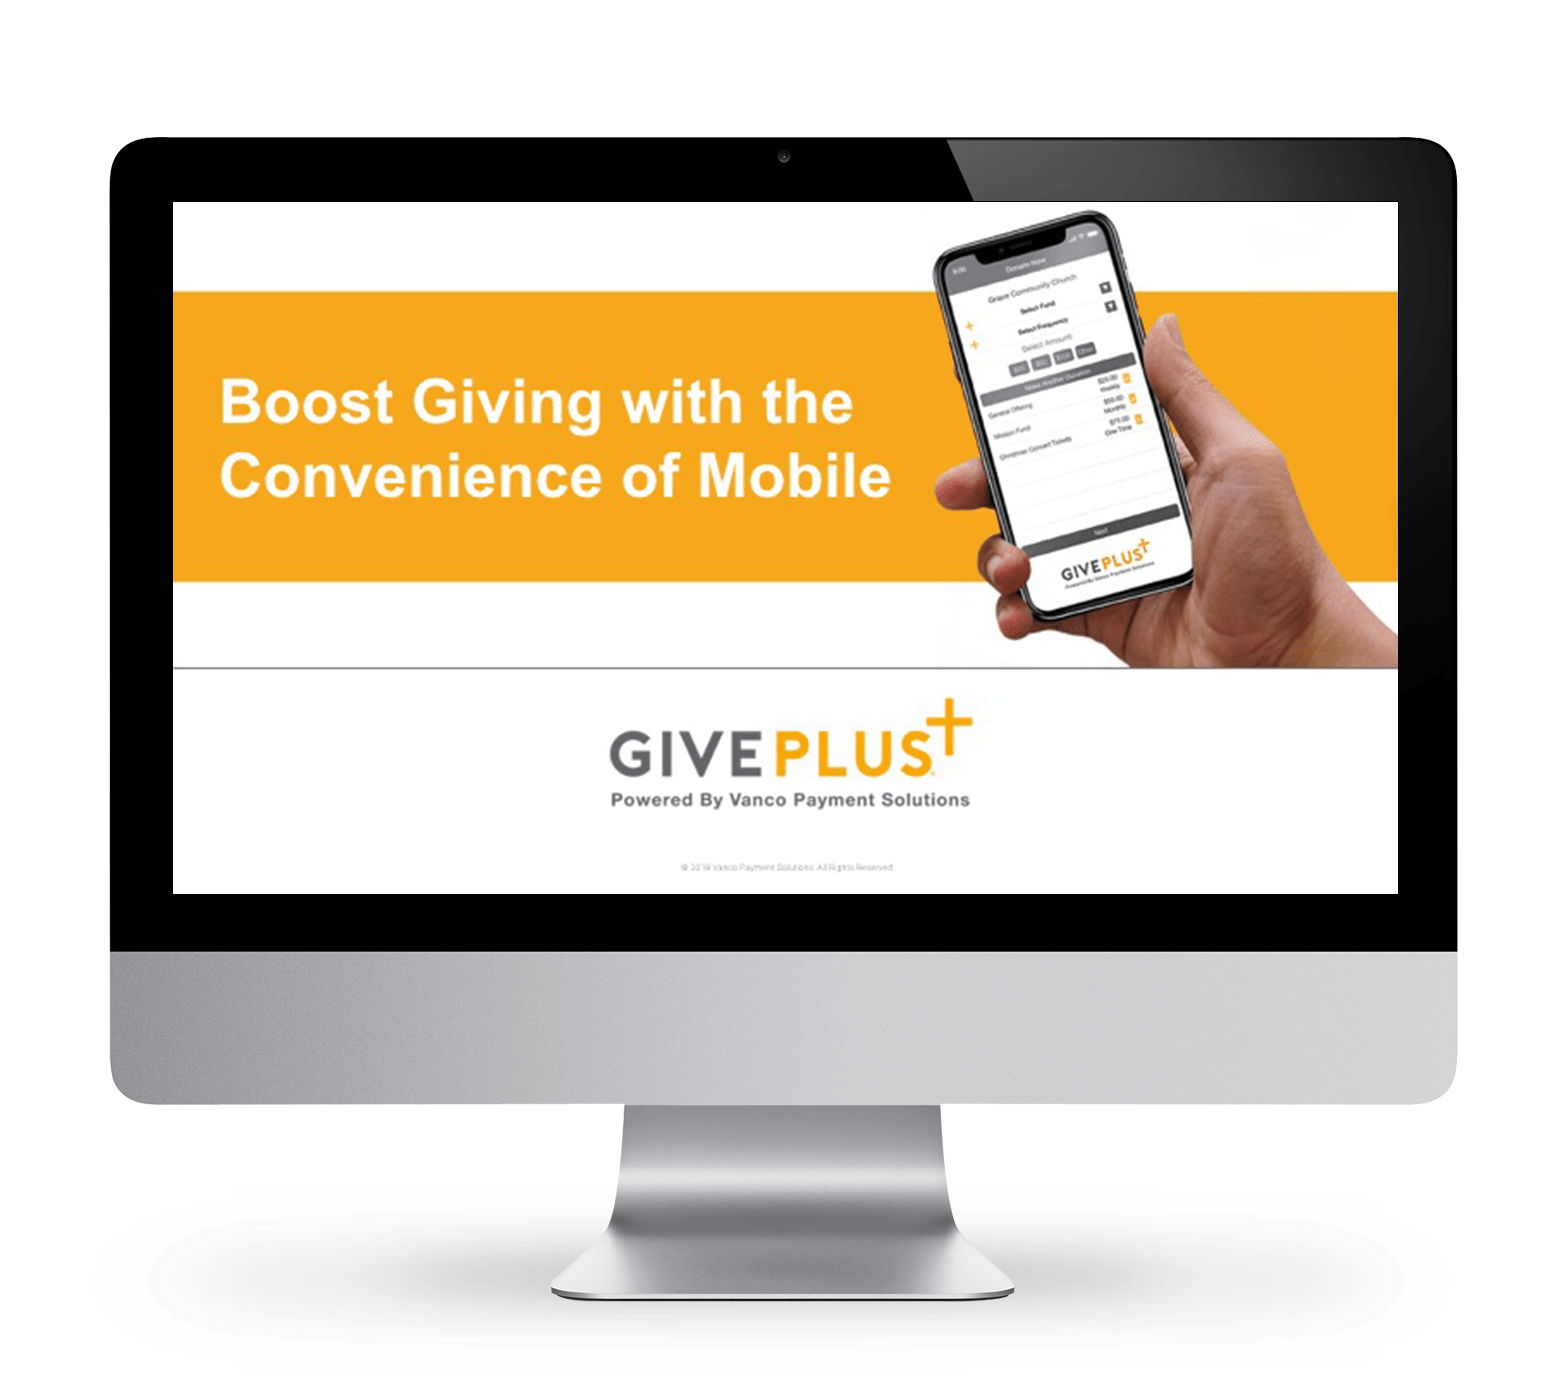 Boost Giving with the Convenience of Mobile